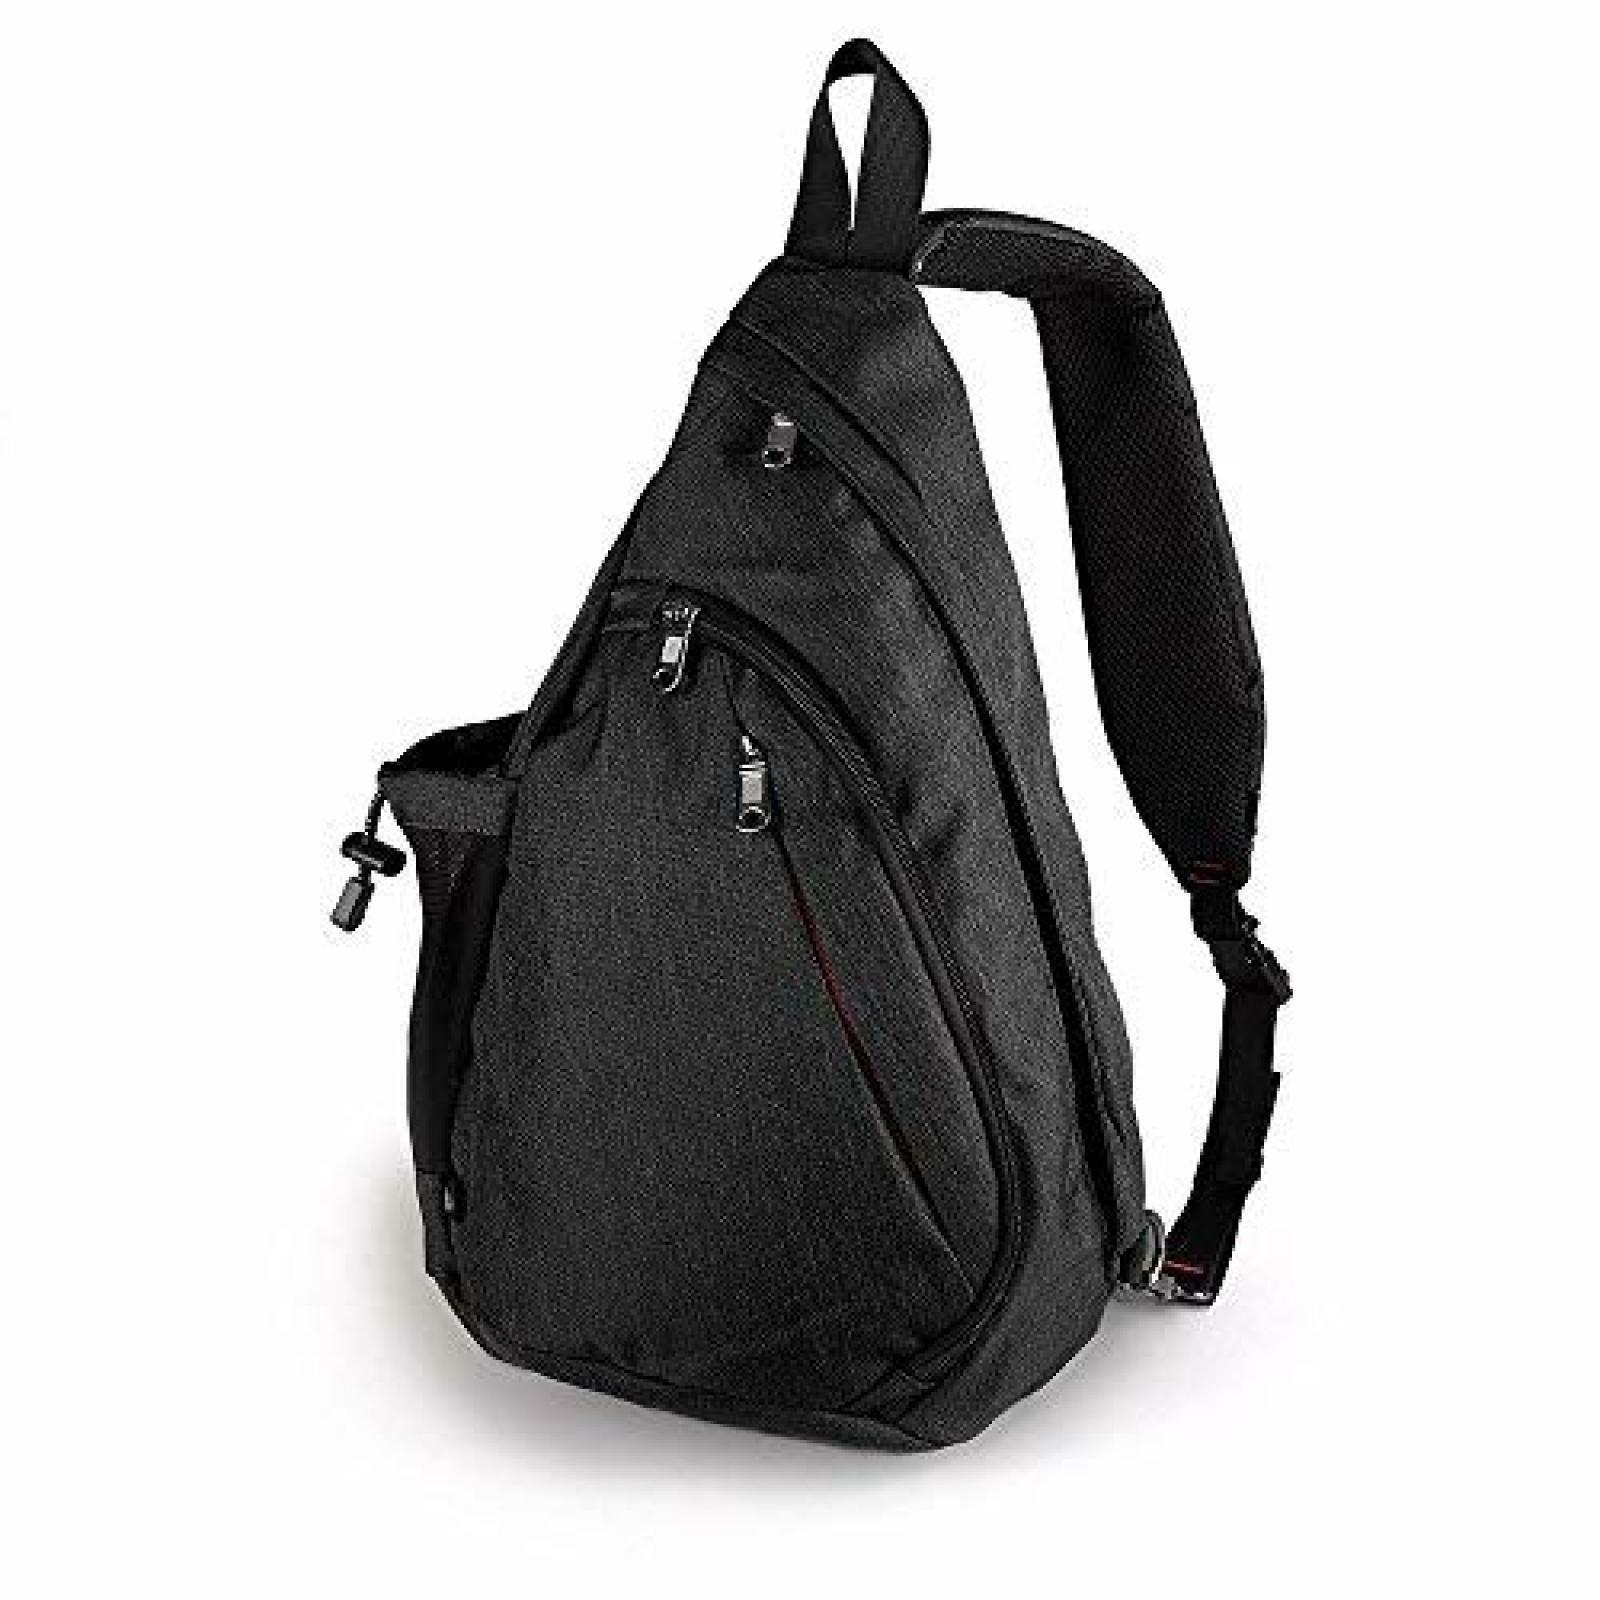 Toupons Sling Bag - Small Crossbody Backpack for Men & Women